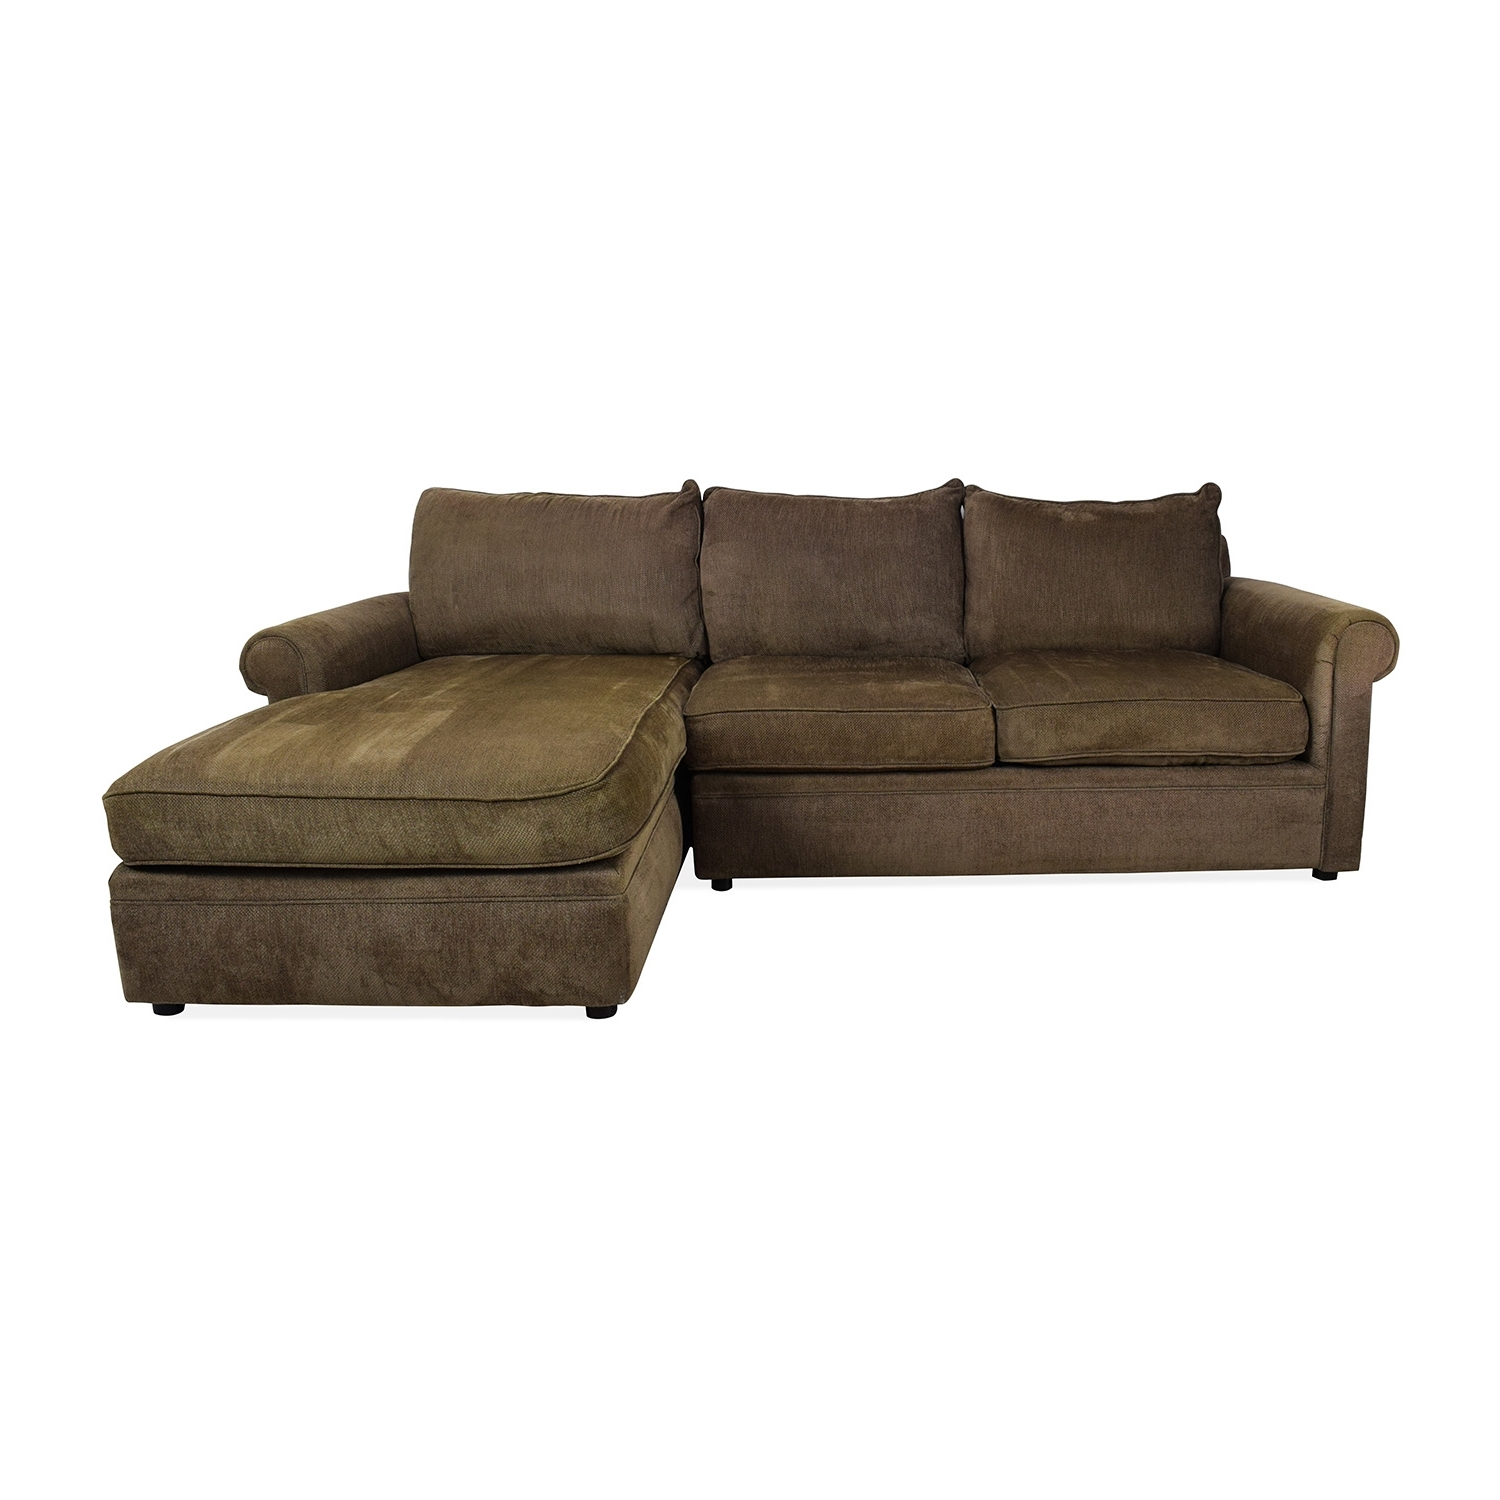 [%83% Off – Bloomingdales Bloomingdale's Sectional / Sofas With Regard To Newest Nj Sectional Sofas|Nj Sectional Sofas Within Most Up To Date 83% Off – Bloomingdales Bloomingdale's Sectional / Sofas|2018 Nj Sectional Sofas Regarding 83% Off – Bloomingdales Bloomingdale's Sectional / Sofas|Most Up To Date 83% Off – Bloomingdales Bloomingdale's Sectional / Sofas Within Nj Sectional Sofas%] (View 2 of 20)